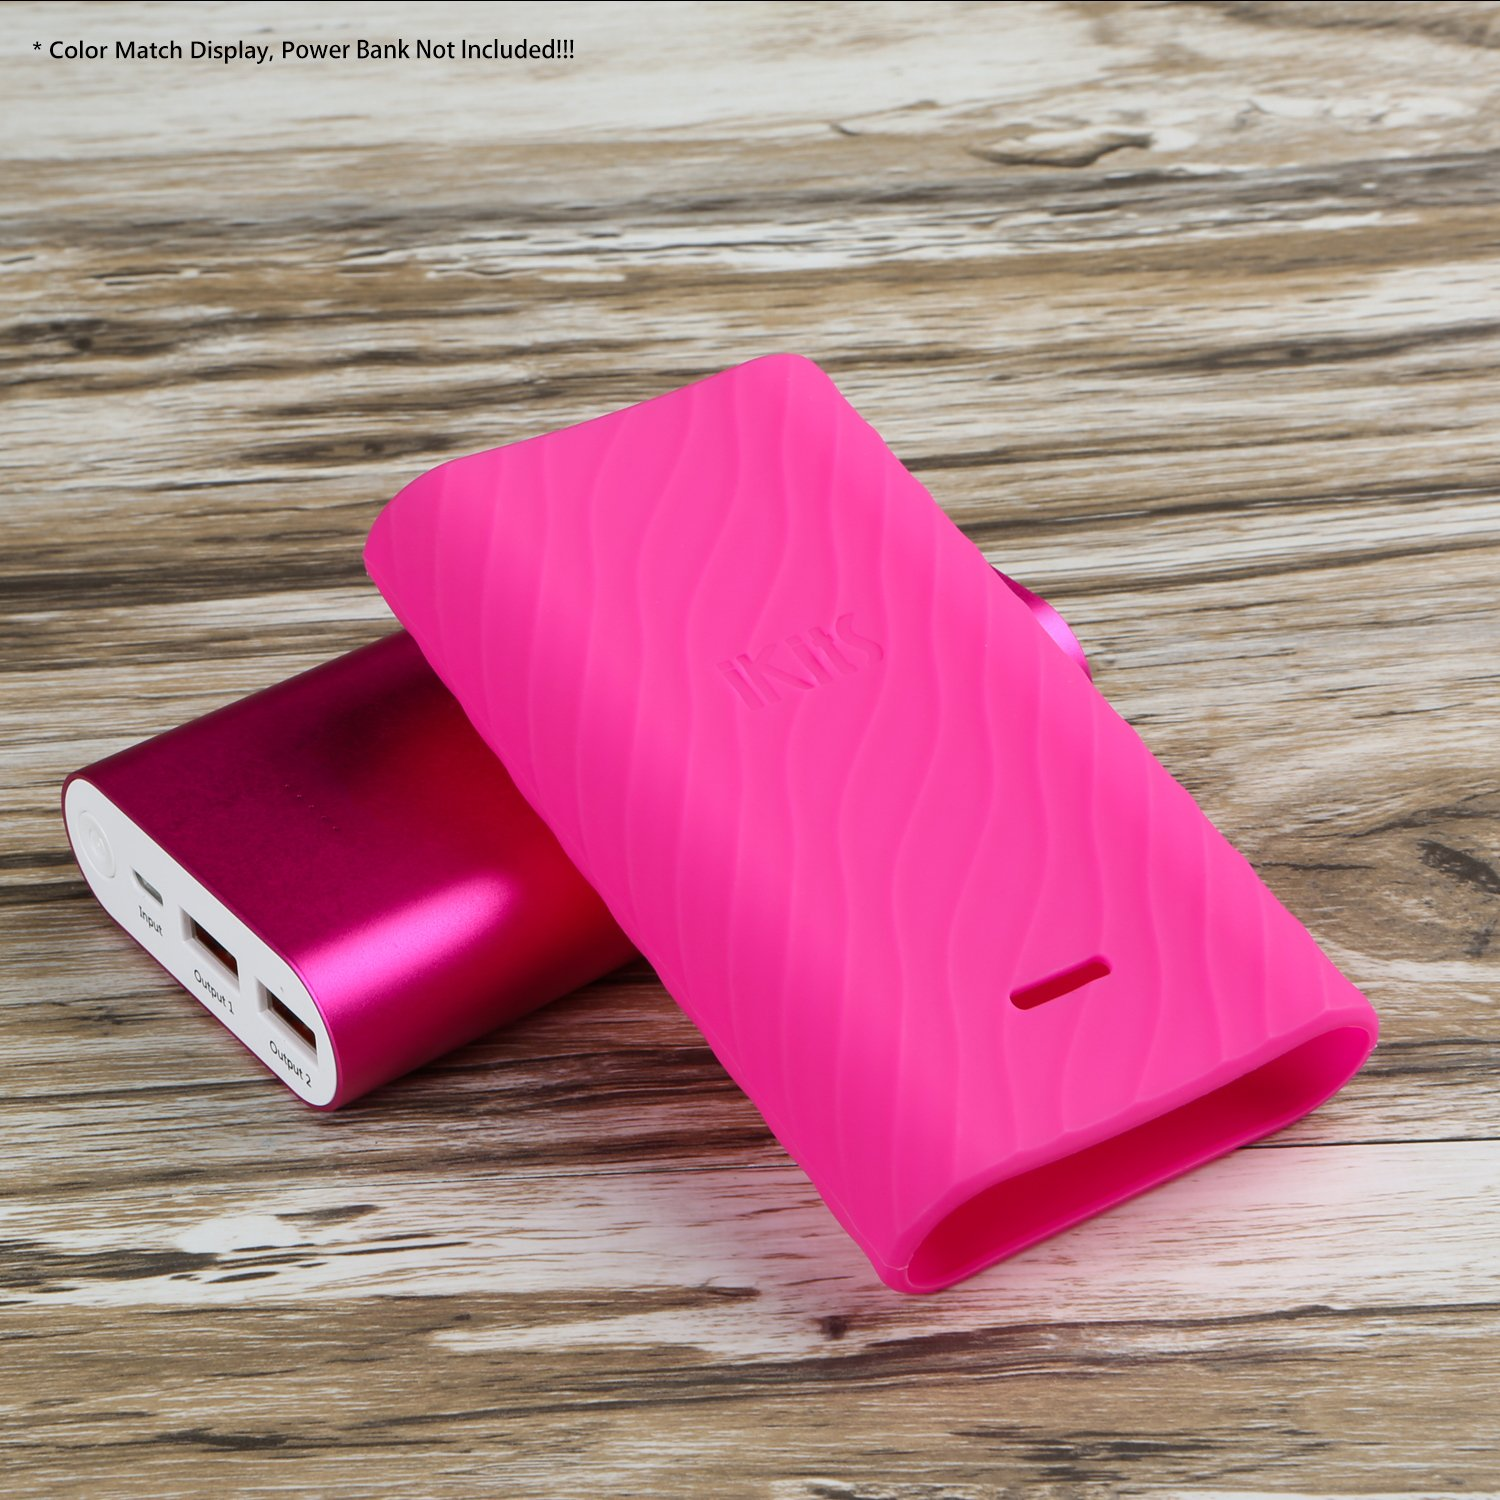 iKits Protective Case 10200mAh Portable Charger, Fast Charge Power Bank Silicone Case, Ripple Wave Design, Precise LED Lights Cut, Colorful Choices for 10000mAh Batter Pack (Rose Red) by iKits (Image #6)